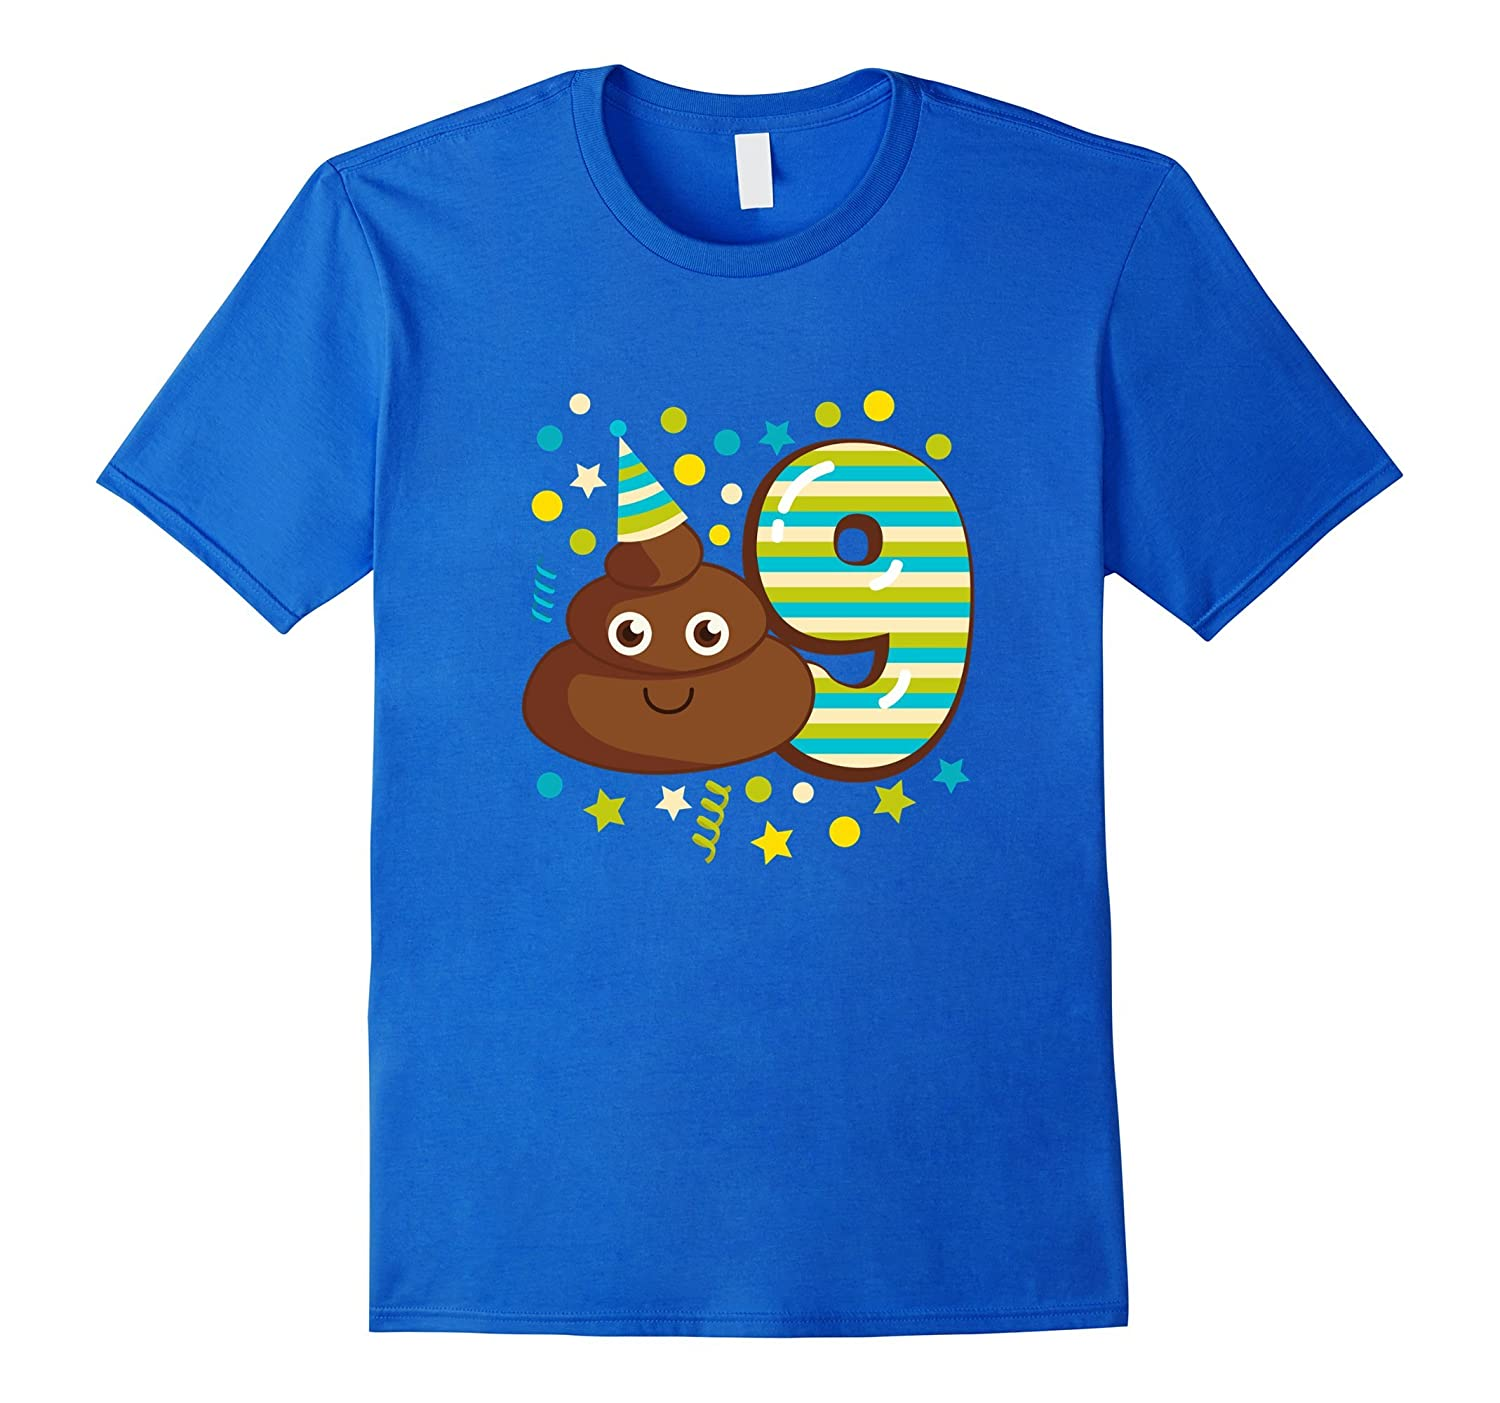 Design t shirt kid -  Kids Birthday Parties 9 Year Old Party Shirt Girl Or Boy Best Design T